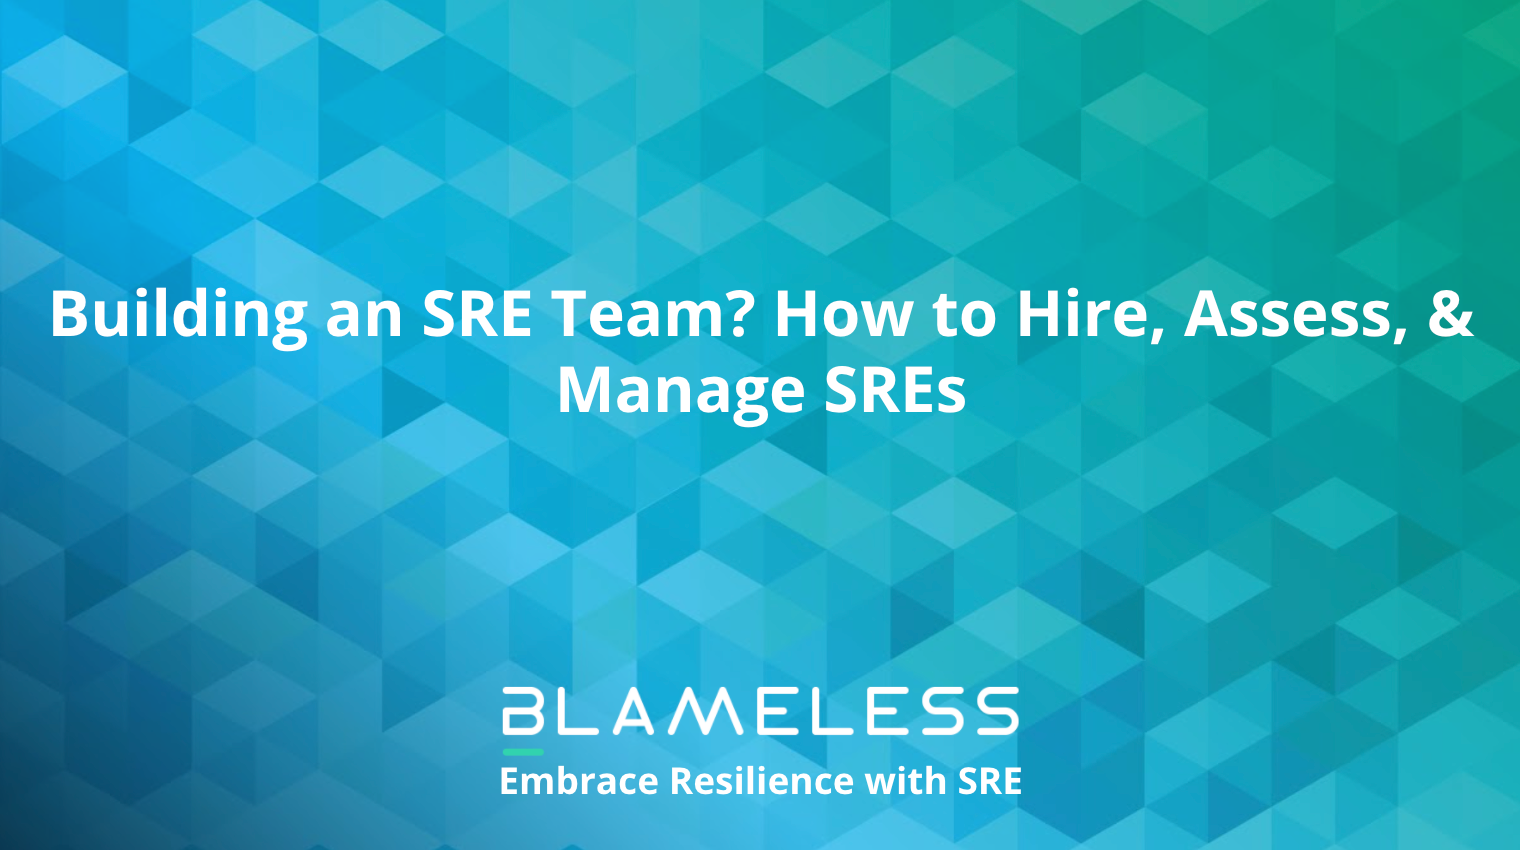 Building an SRE Team? How to Hire, Assess, & Manage SREs